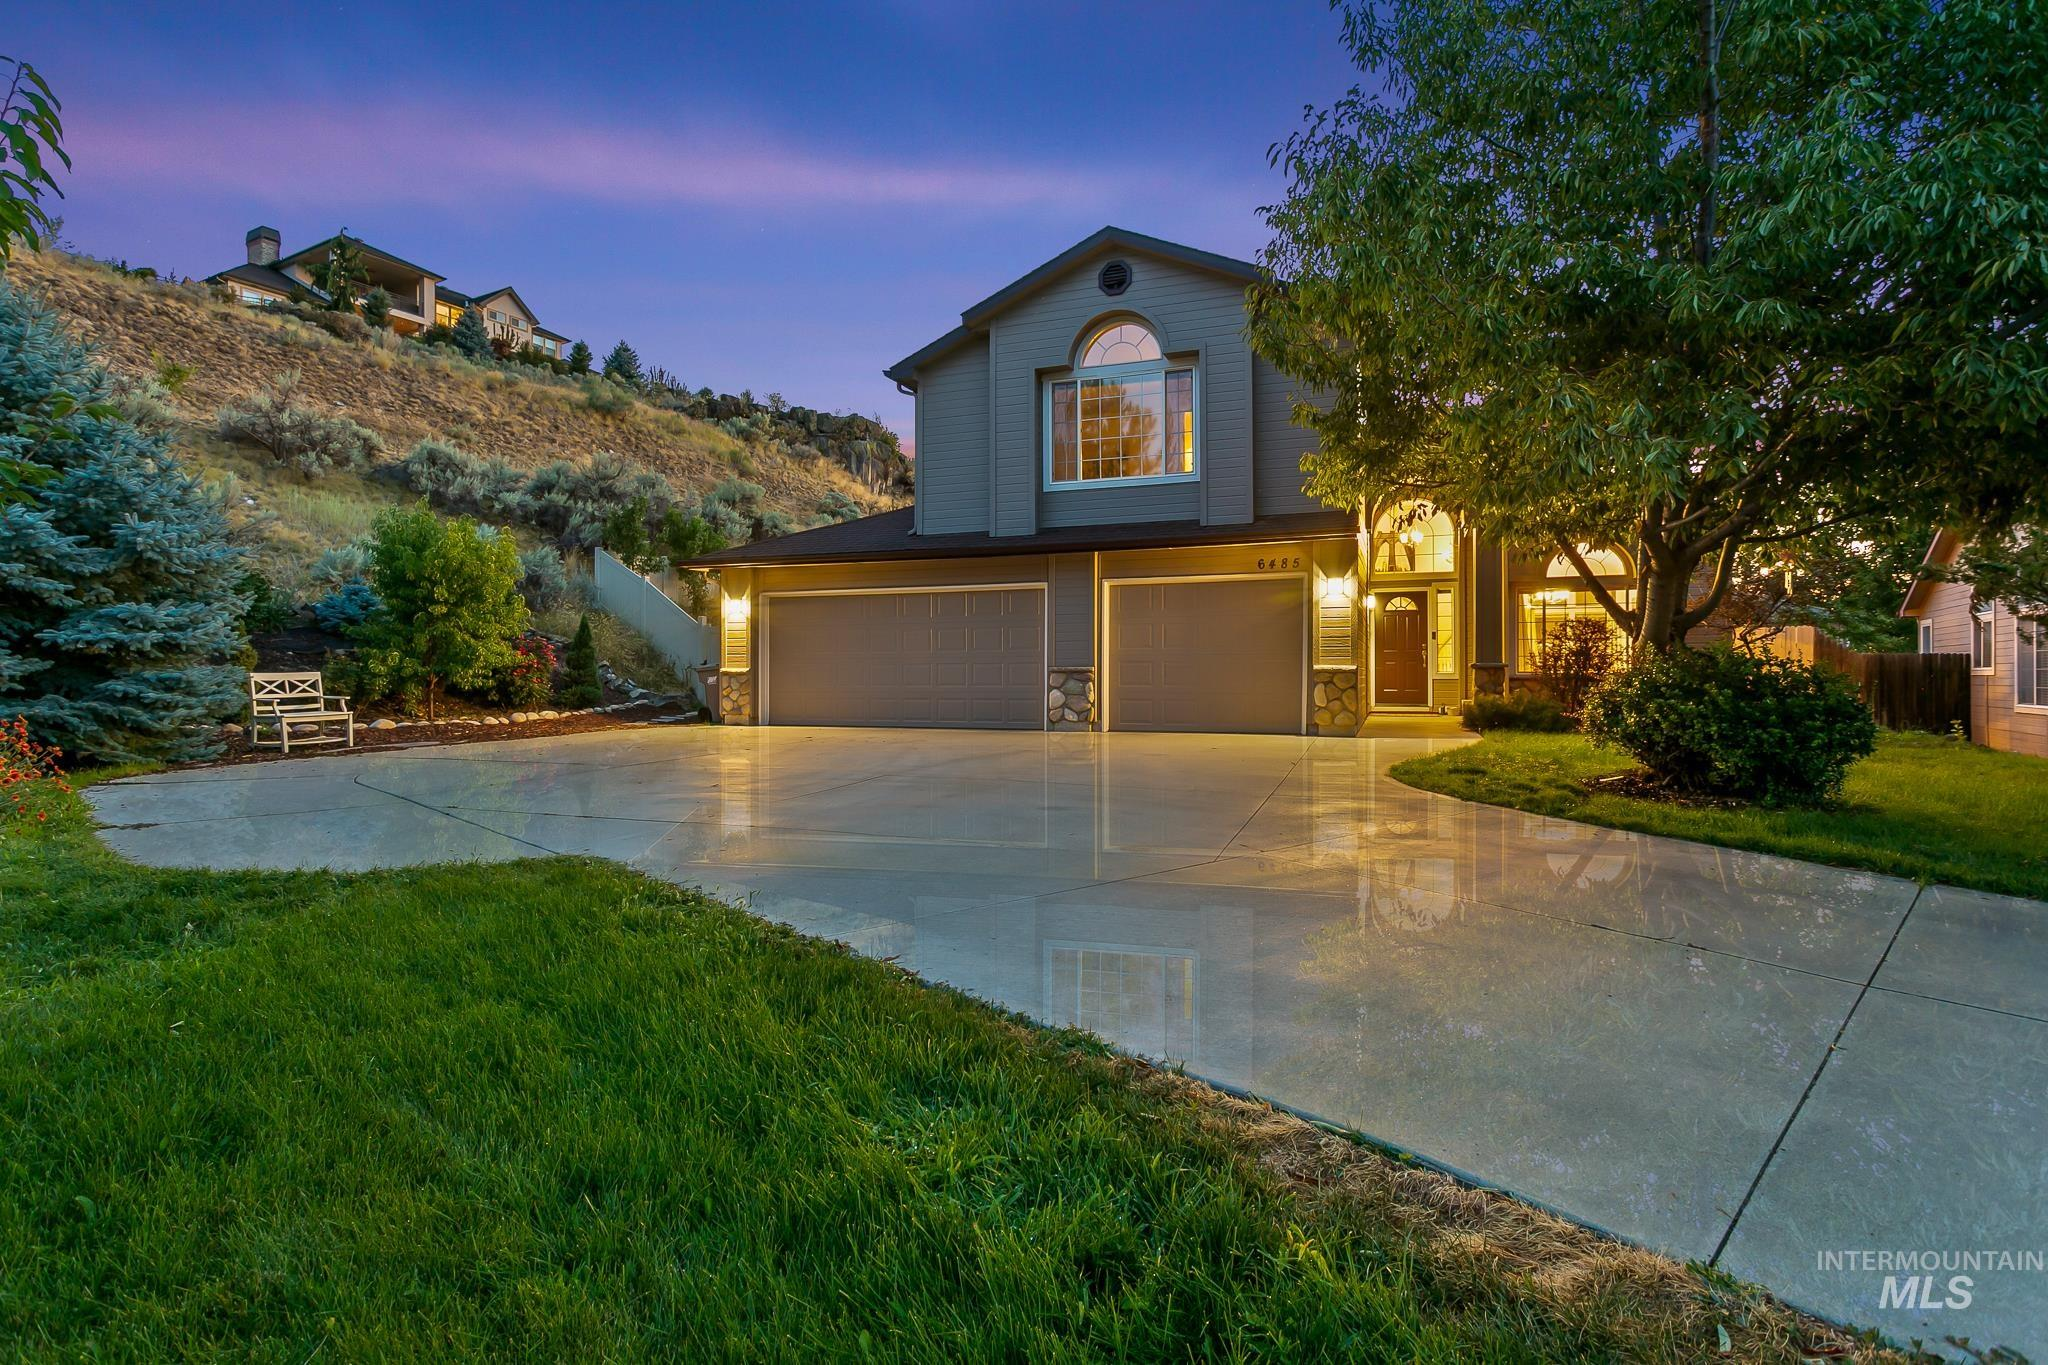 Beautifully maintained home nestled up against the foothills w/access to trails right out of the backyard. This home is w/in walking distance to Simplot Sports Complex and just minutes to downtown, Lucky Peak, & Micron. Versatile floor plan w/ lots of natural light. Main level bedroom, bathroom, 2 living spaces & formal dining. Upstairs boasts a large master suite, bonus room, 4th bedroom would make a great office. Tucked away on a cul de sac for privacy. Fruit trees, waterfall, & new exterior paint. - Sheila A Smith, Voice: 208-631-2248, RE/MAX Capital City, Main: 208-344-7477, http://www.SheilaSmithRealEstate.com